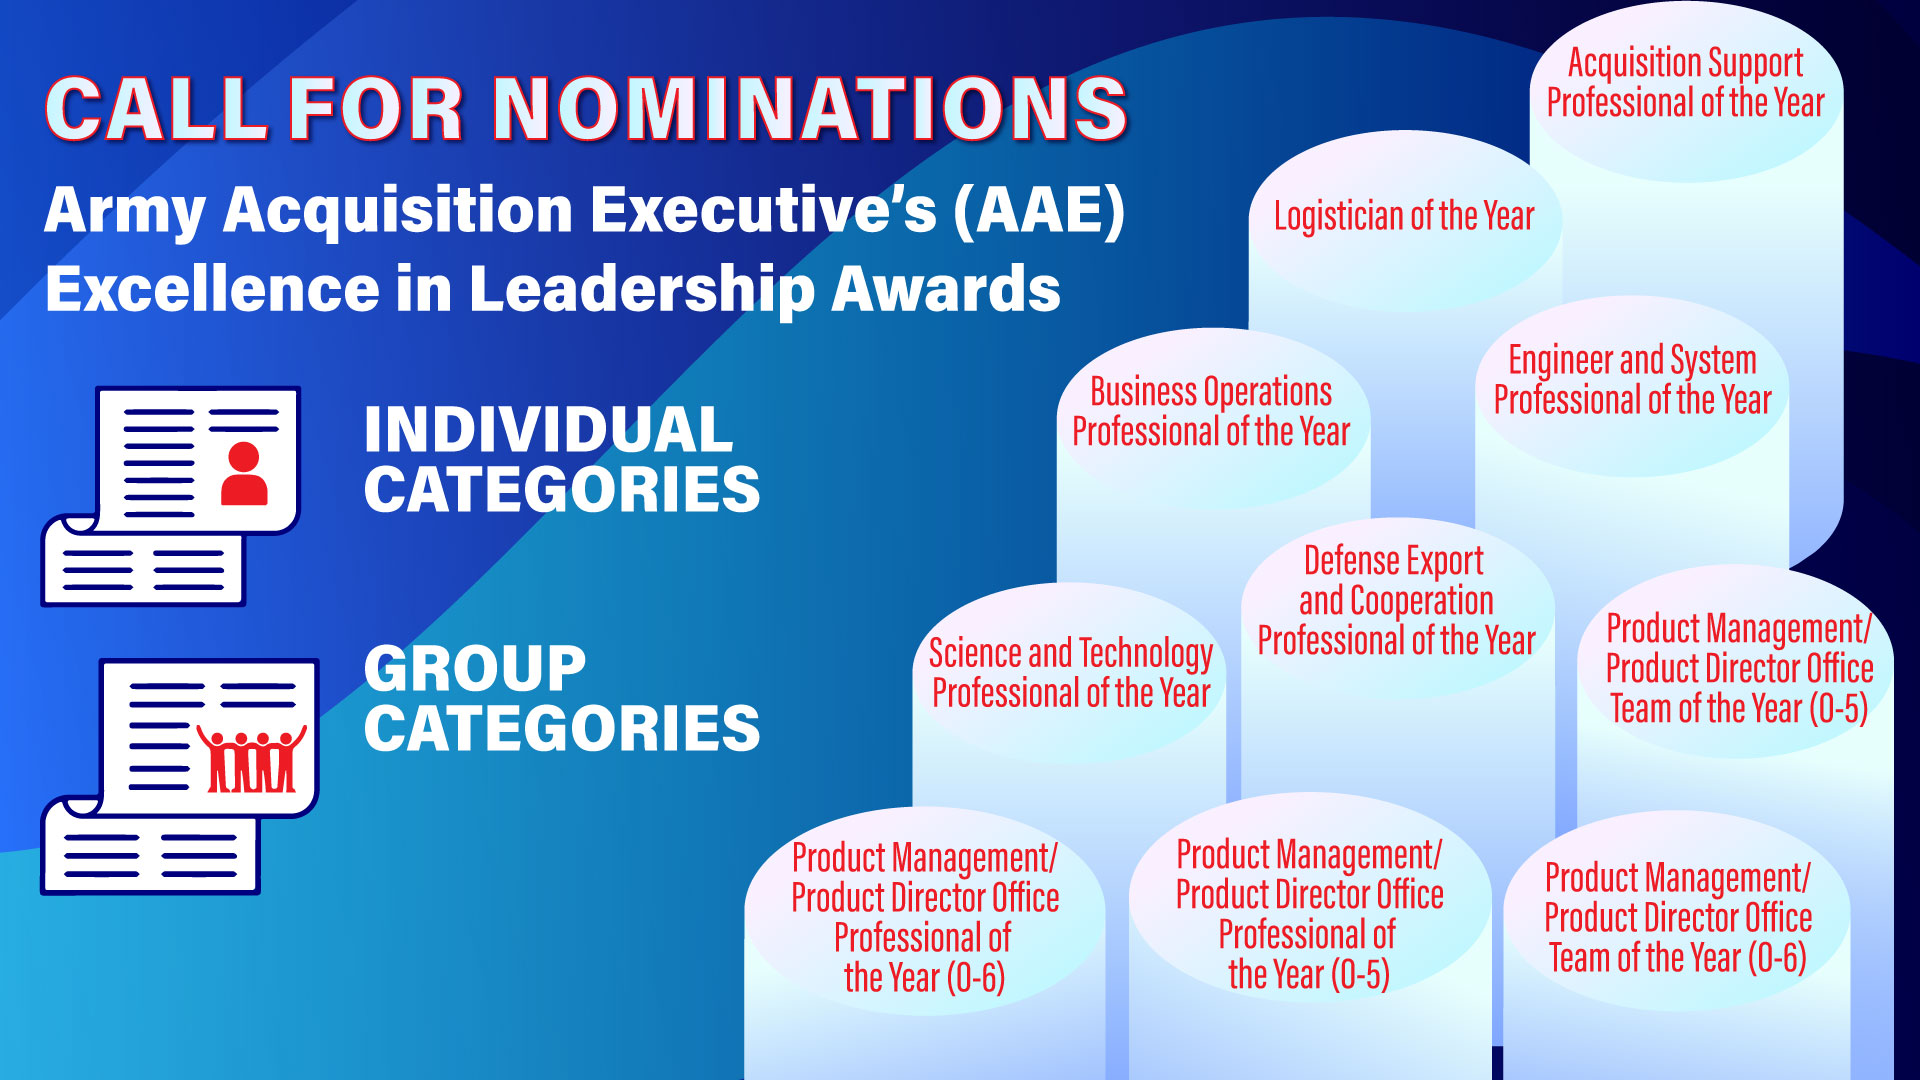 2019 Call for nominations for AAE Excellence in Leadership Awards